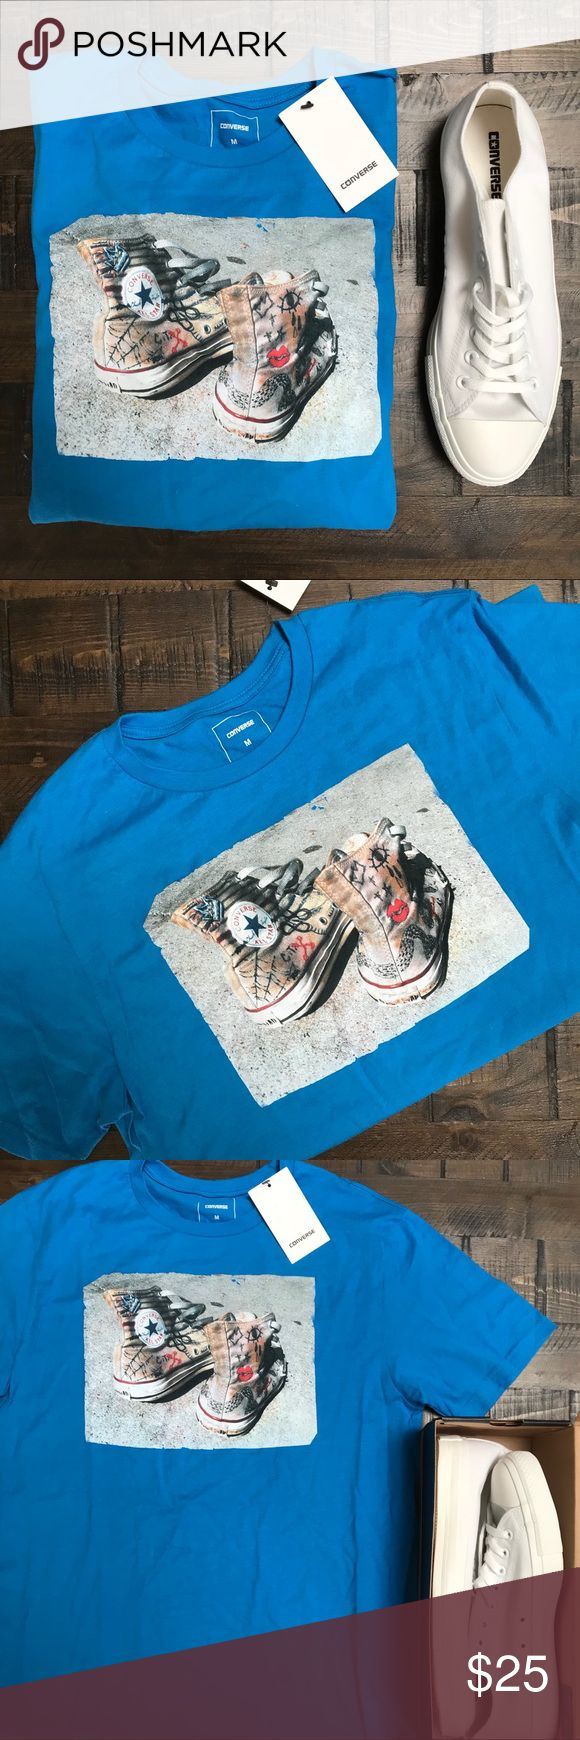 NWT 💙 Converse MENS TEE SZ MEDIUM New with tags! Converse slim cut, smooth combed cotton short sleeve tee size medium. 💙 Ships Same or next day from my smoke free home. Bundle items to save! Converse Shirts Tees - Short Sleeve